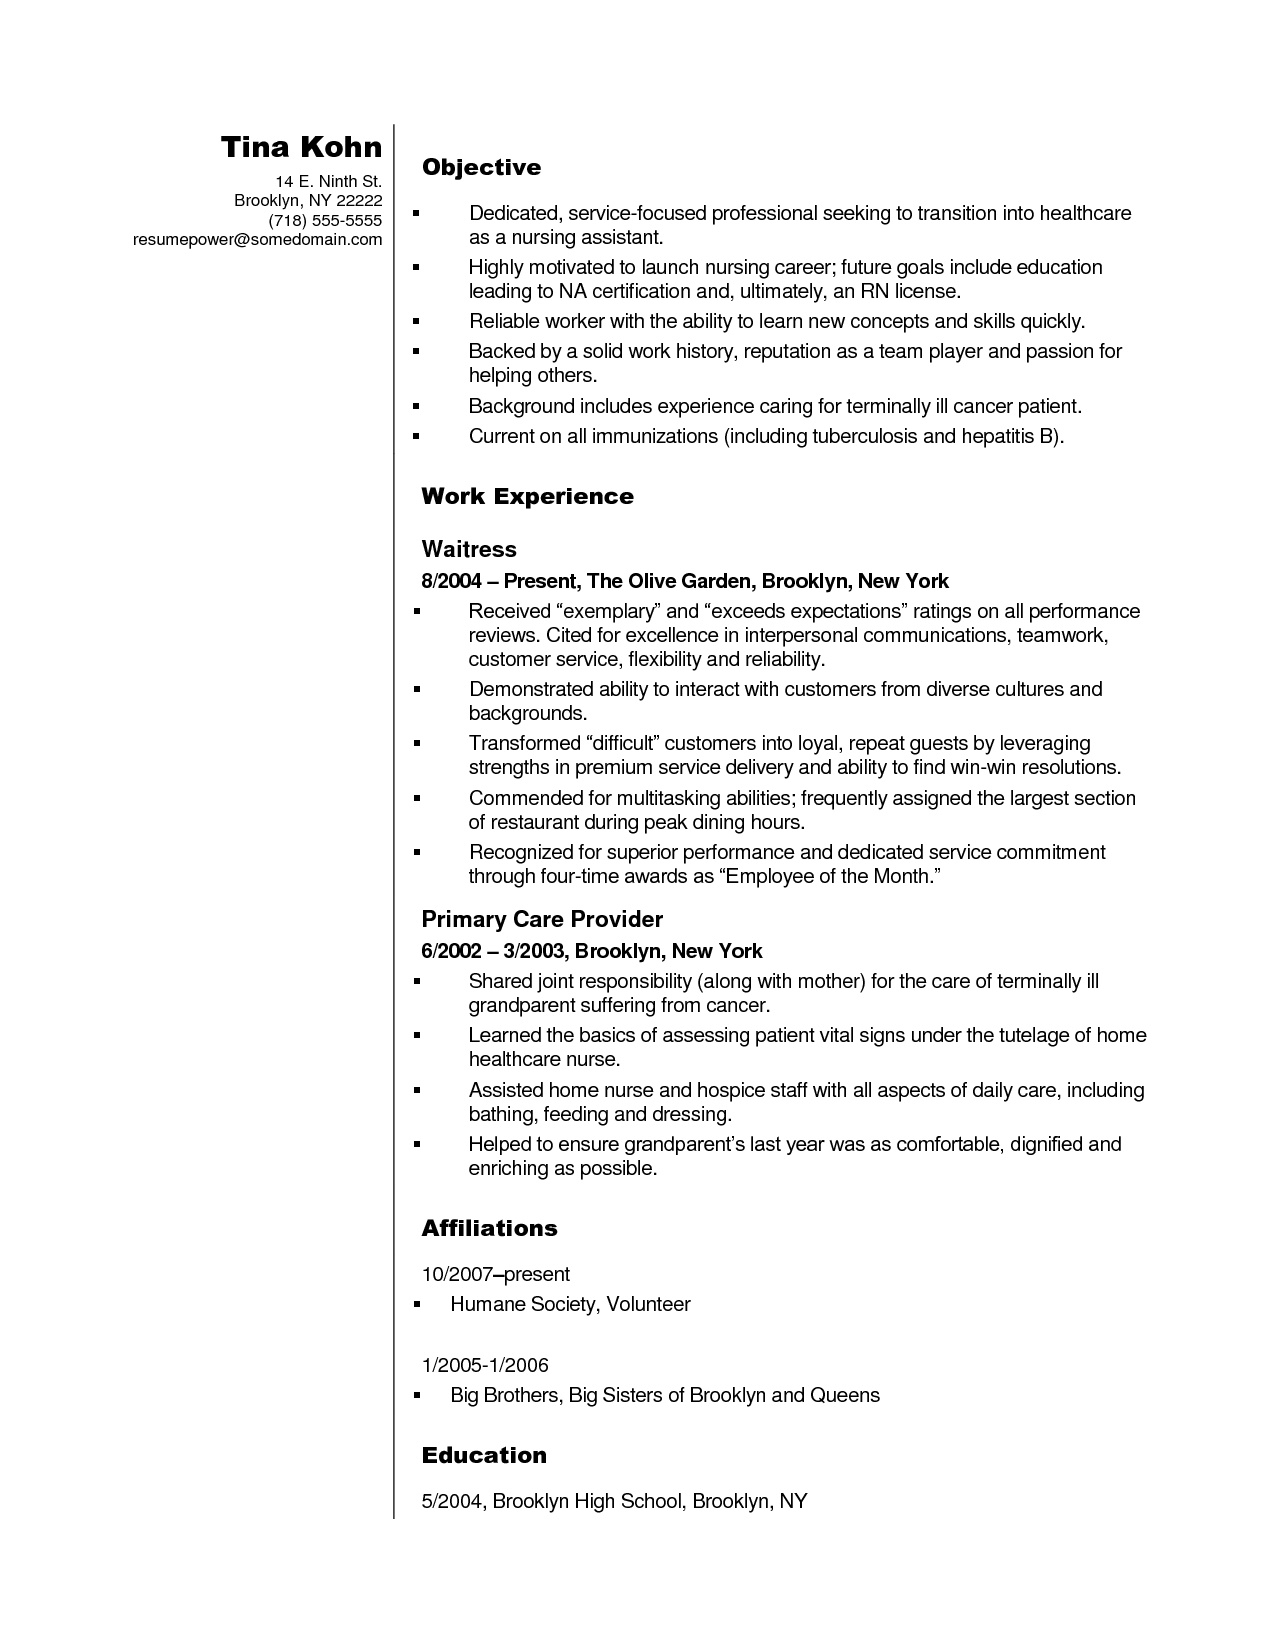 Nursing assistant Resume - Nursing assistant Resume Objective Examples Fresh Cna Resume Sample